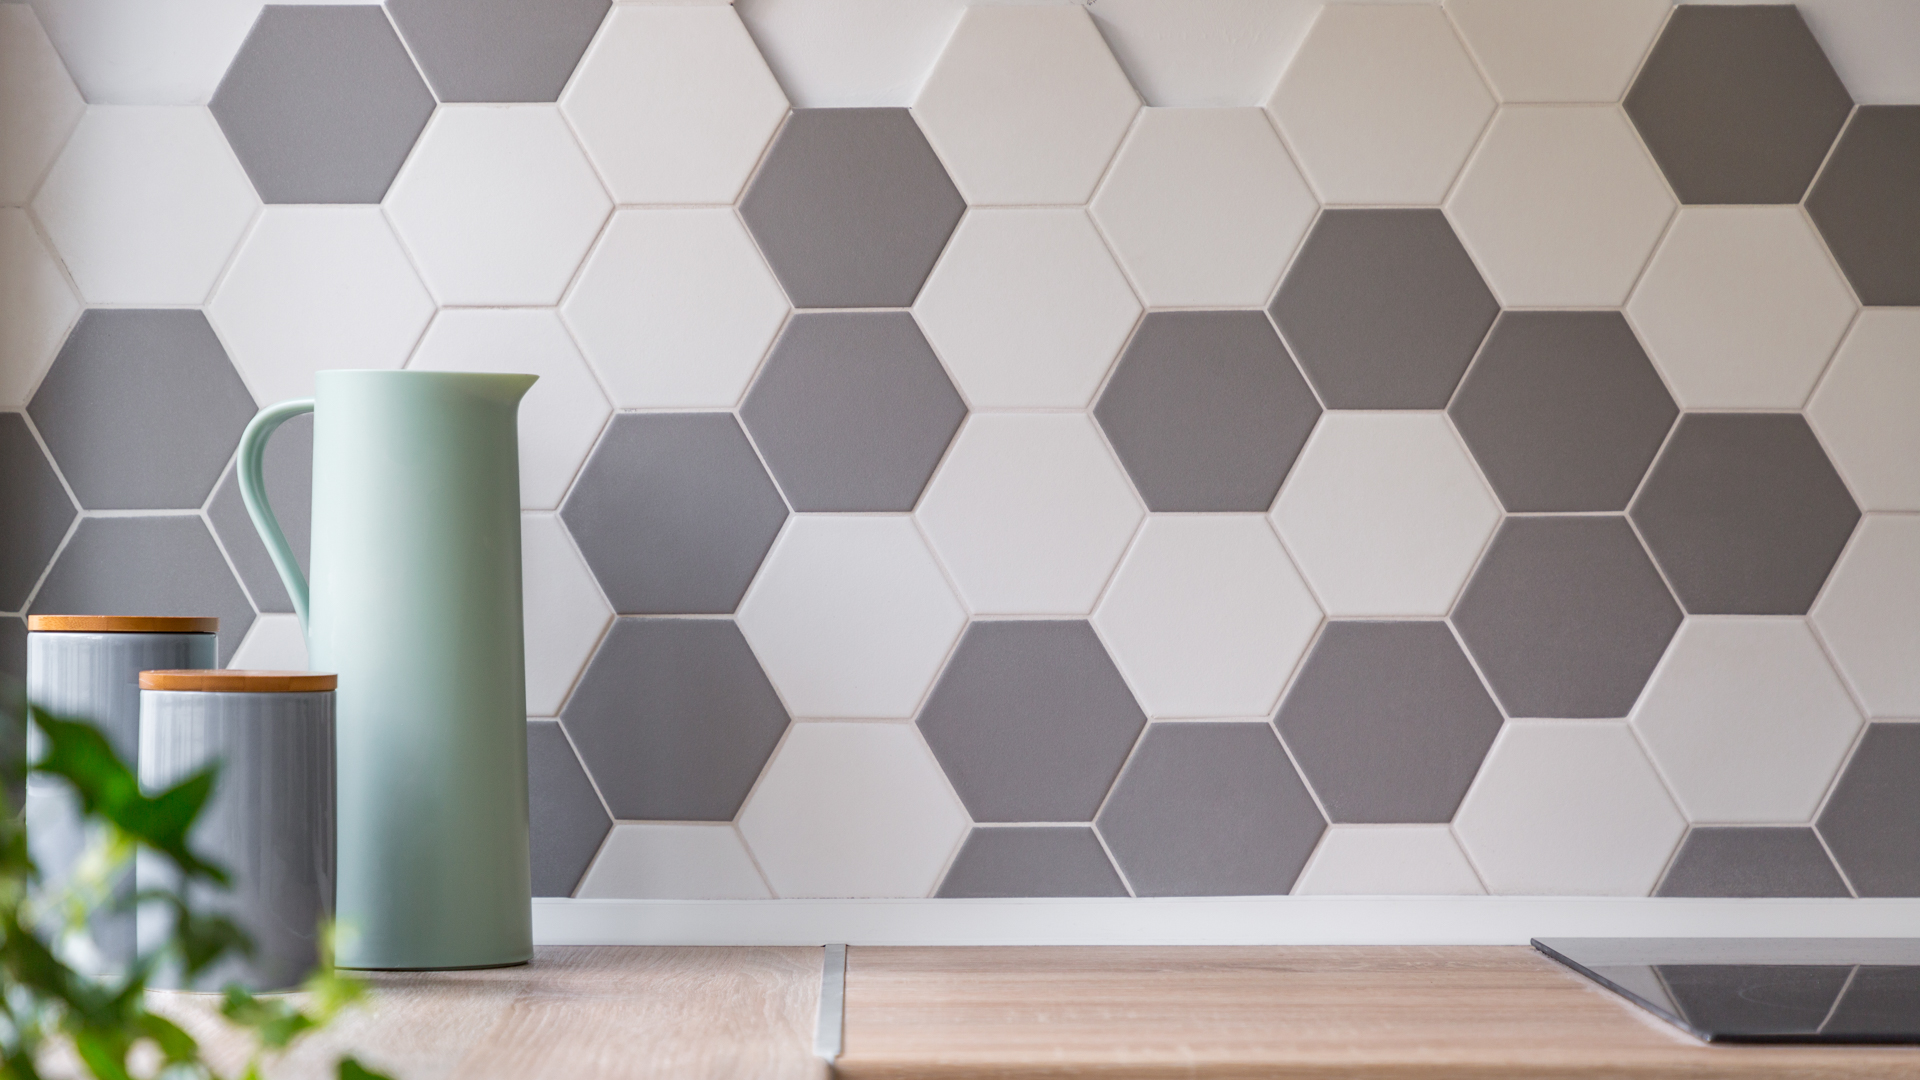 Kitchen with honeycomb wall tiles and wooden worktop.